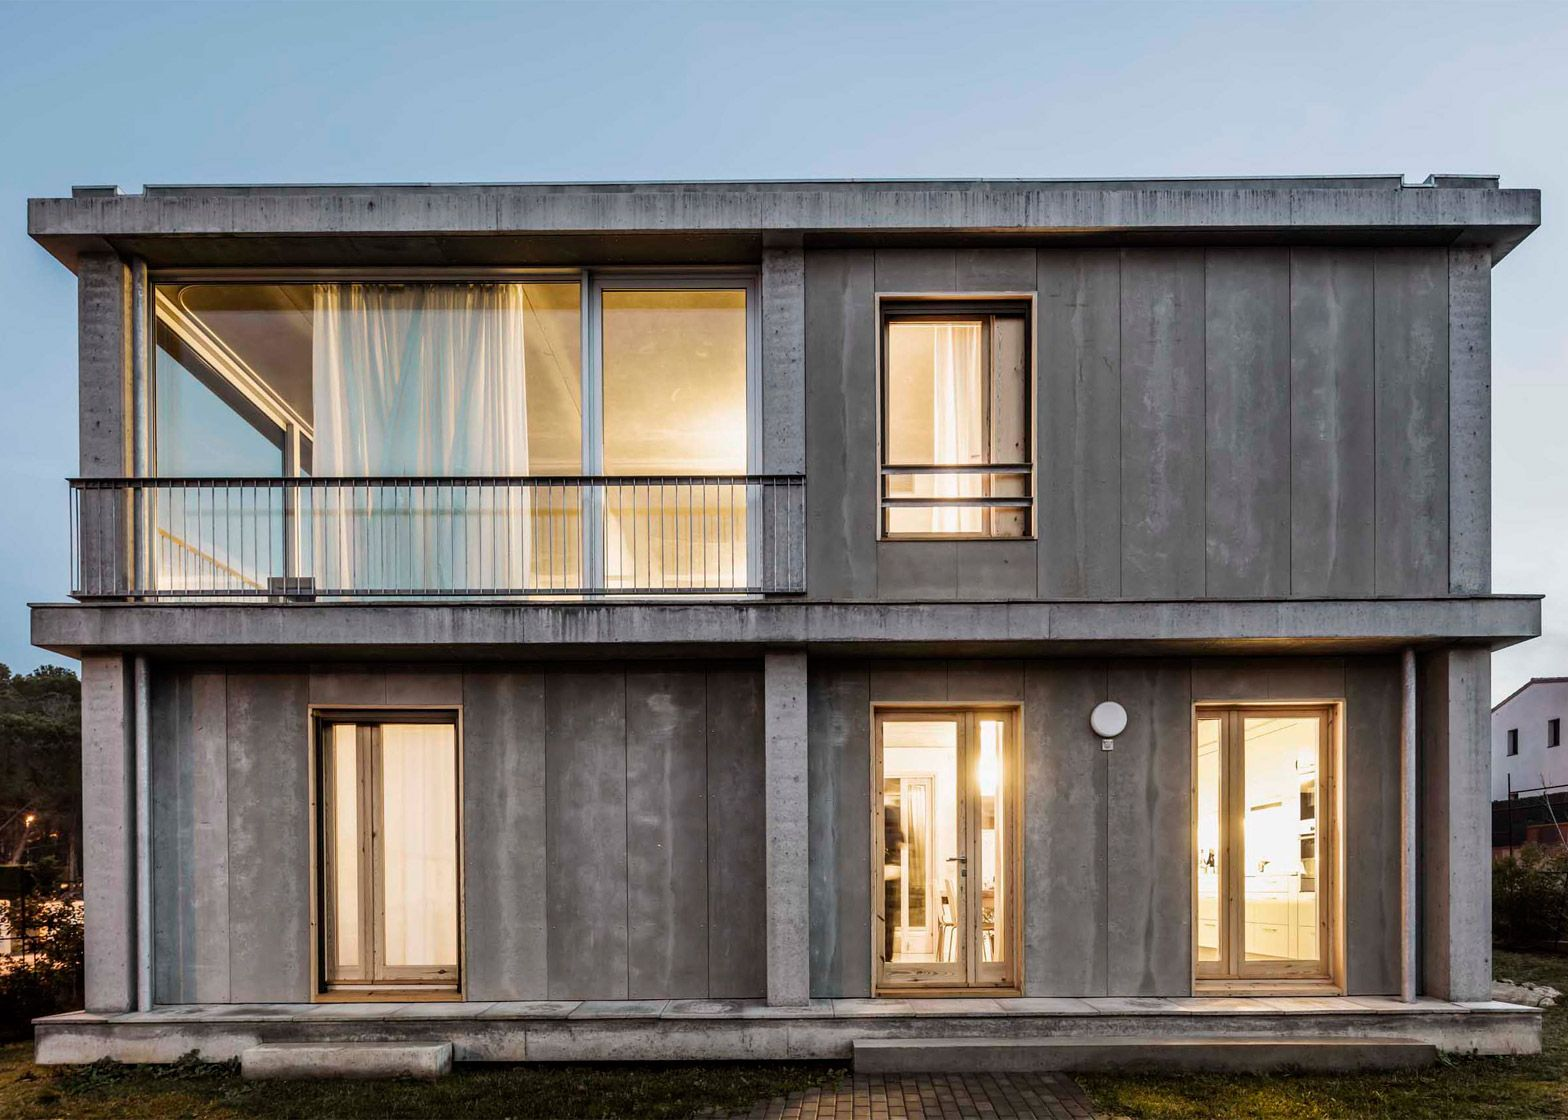 Casa 1217 by H Arquitectes features rooms that can be indoors or outdoors.